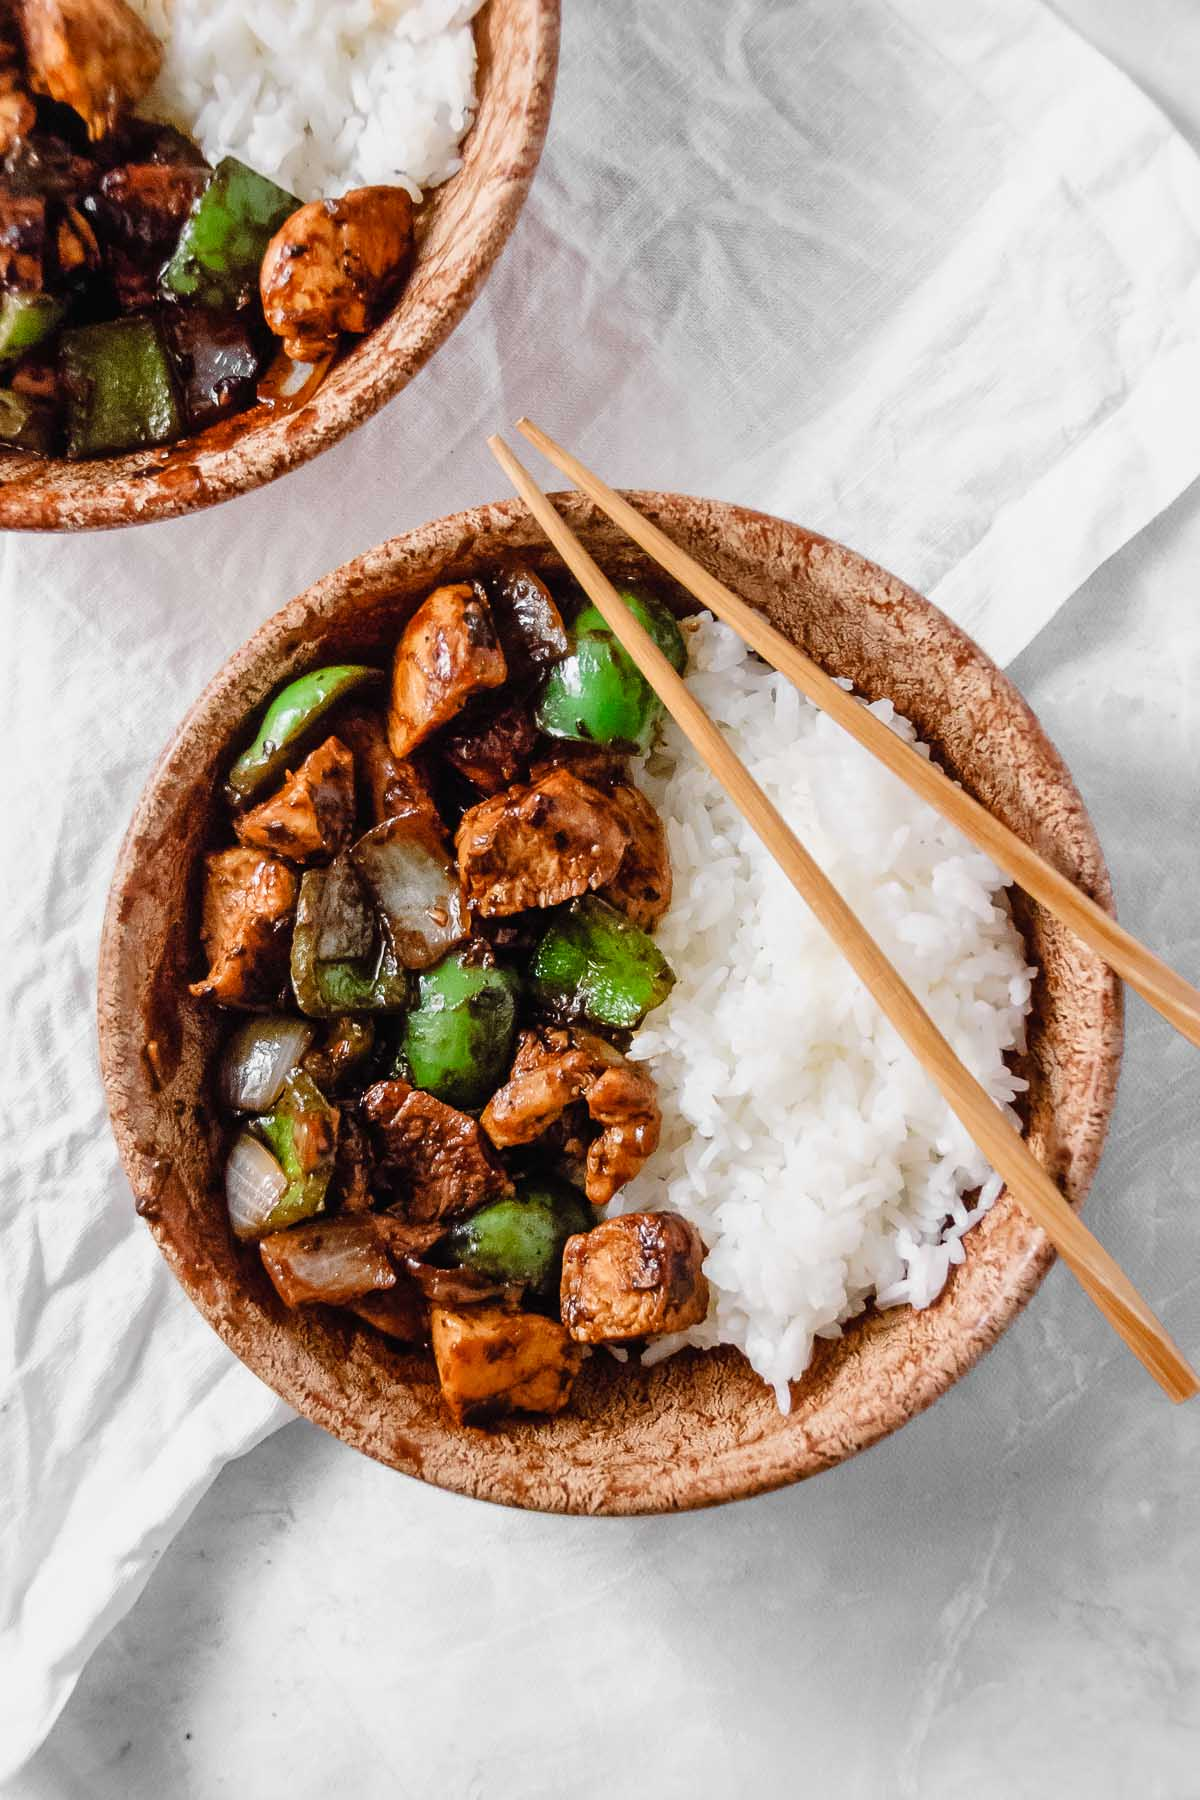 Wood bowls containing black bean chicken stir fry and rice with chopsticks and a white napkin on a grey background.